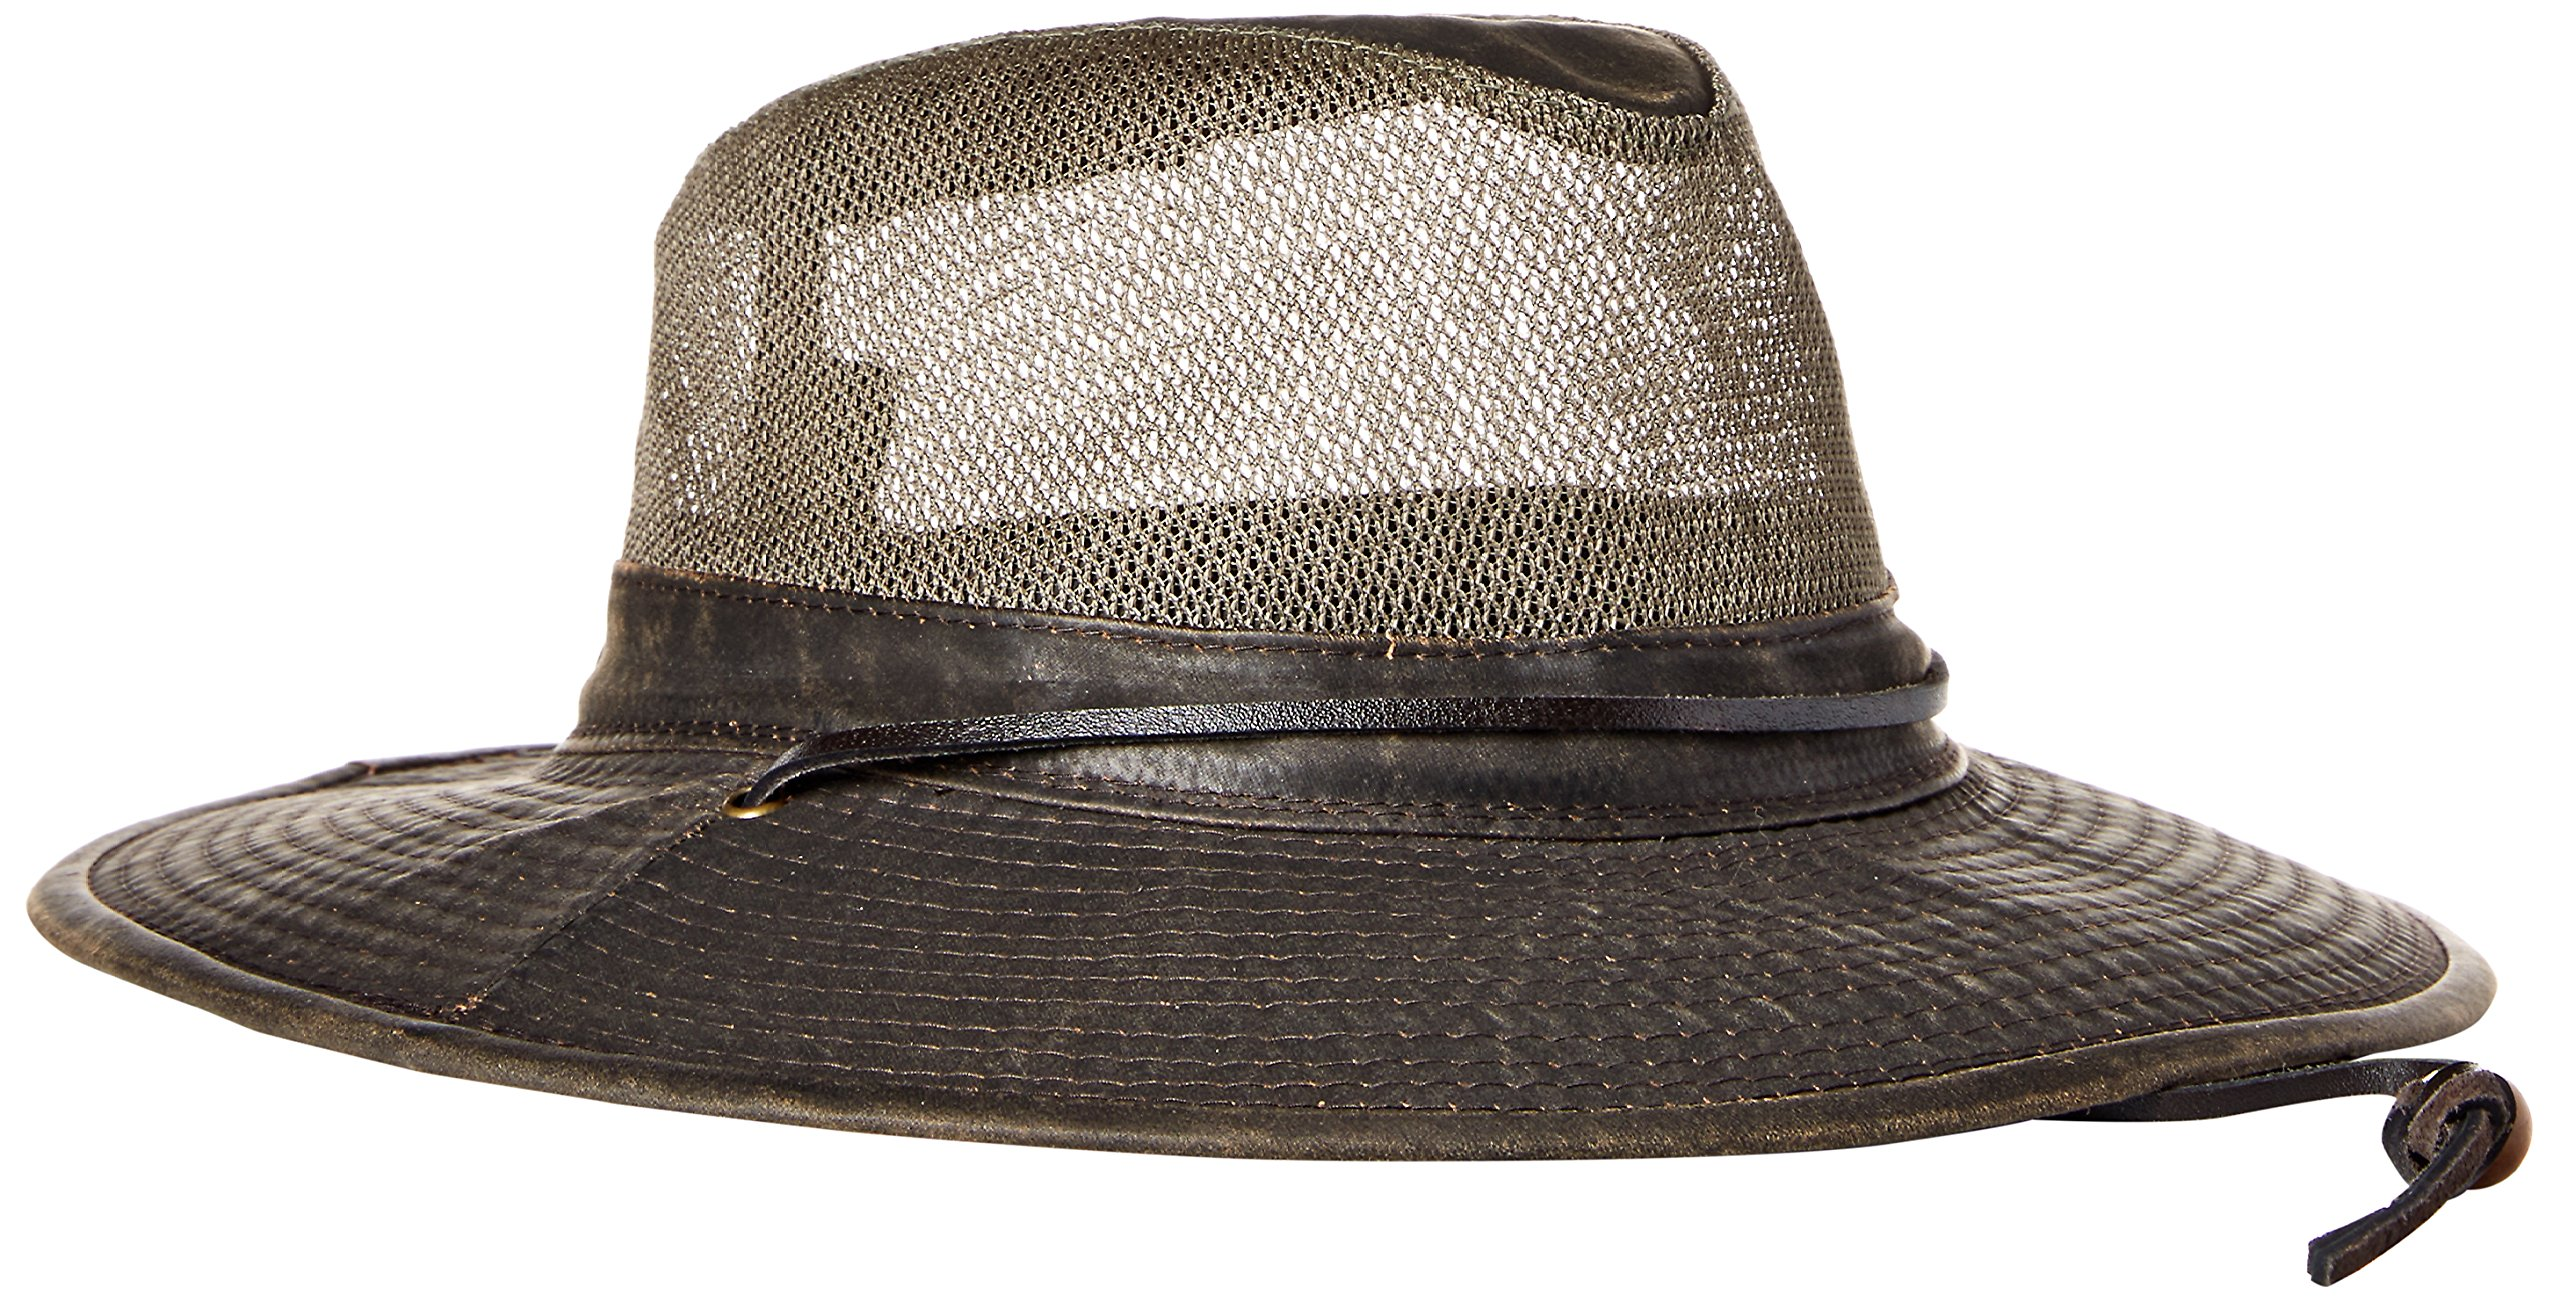 Dorfman Pacific Co. Men's Weathered Cotton Big Brim with Mesh, Brown, Large